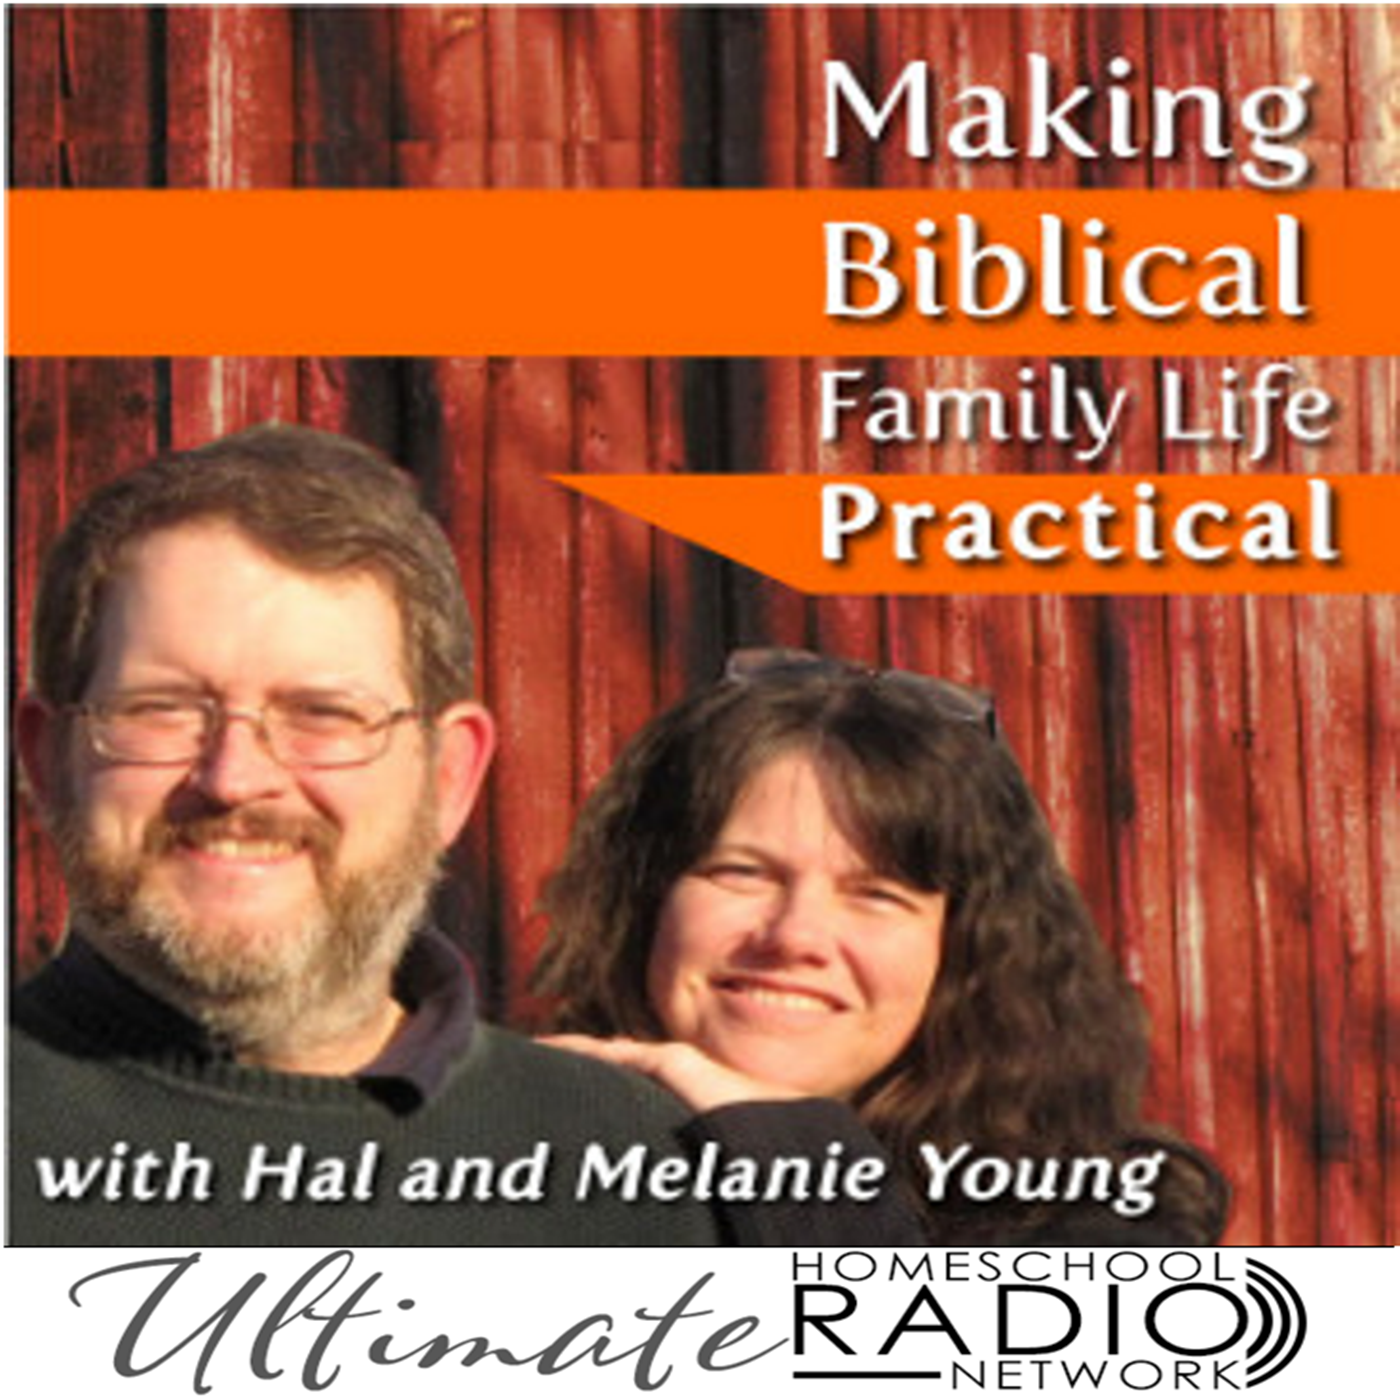 Making Biblical Family Life Practical – Ultimate Homeschool Radio Network